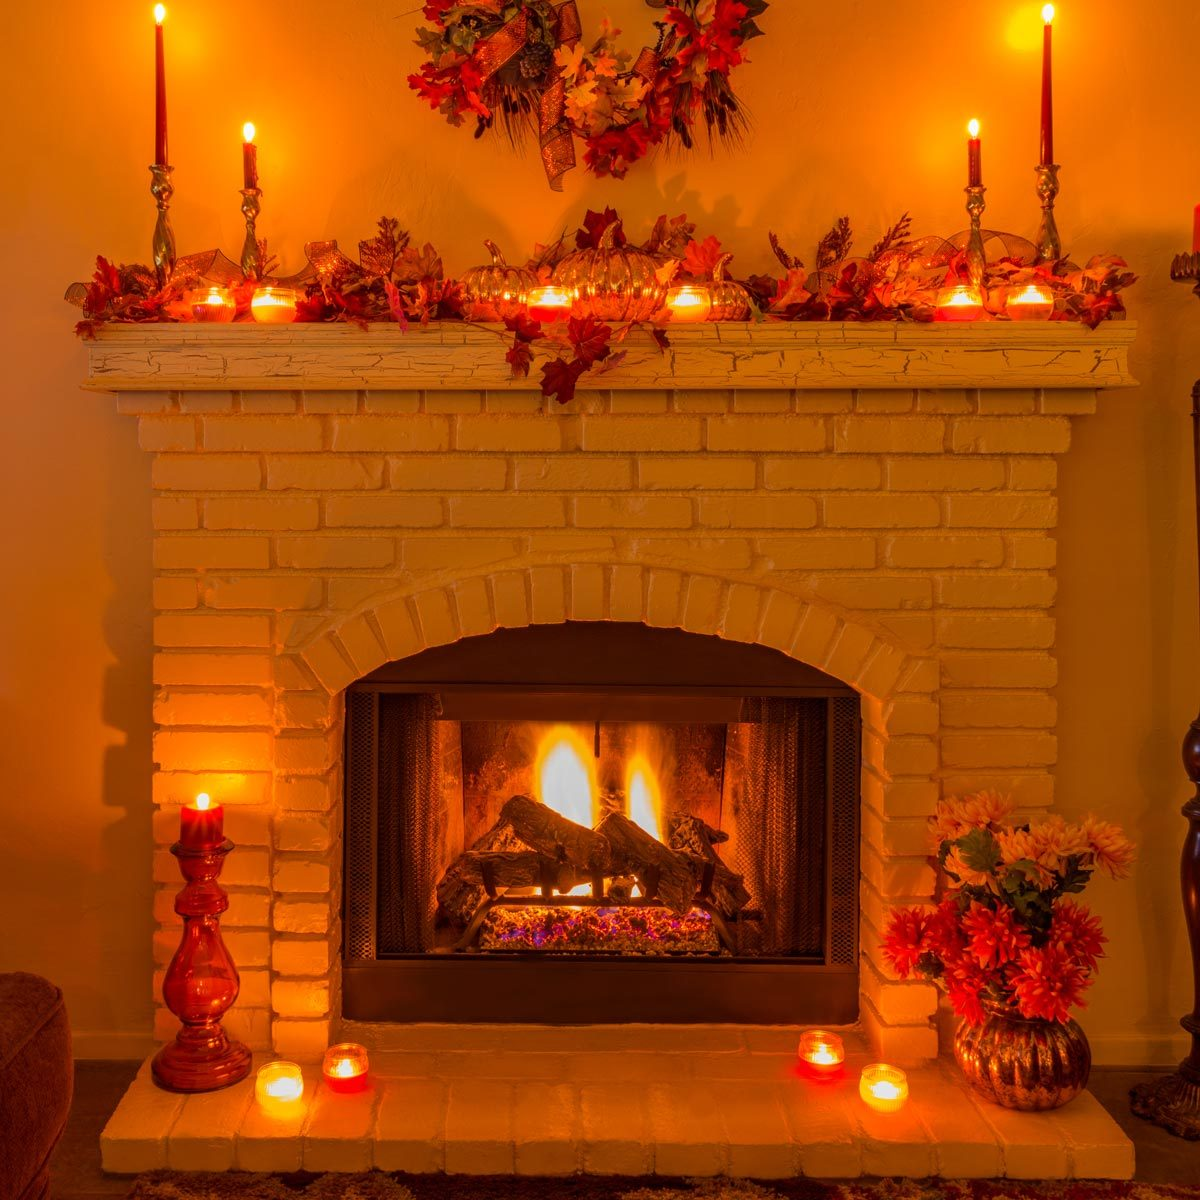 Cozy Brick fireplace with fall decorations and candles Thanksgiving mantel